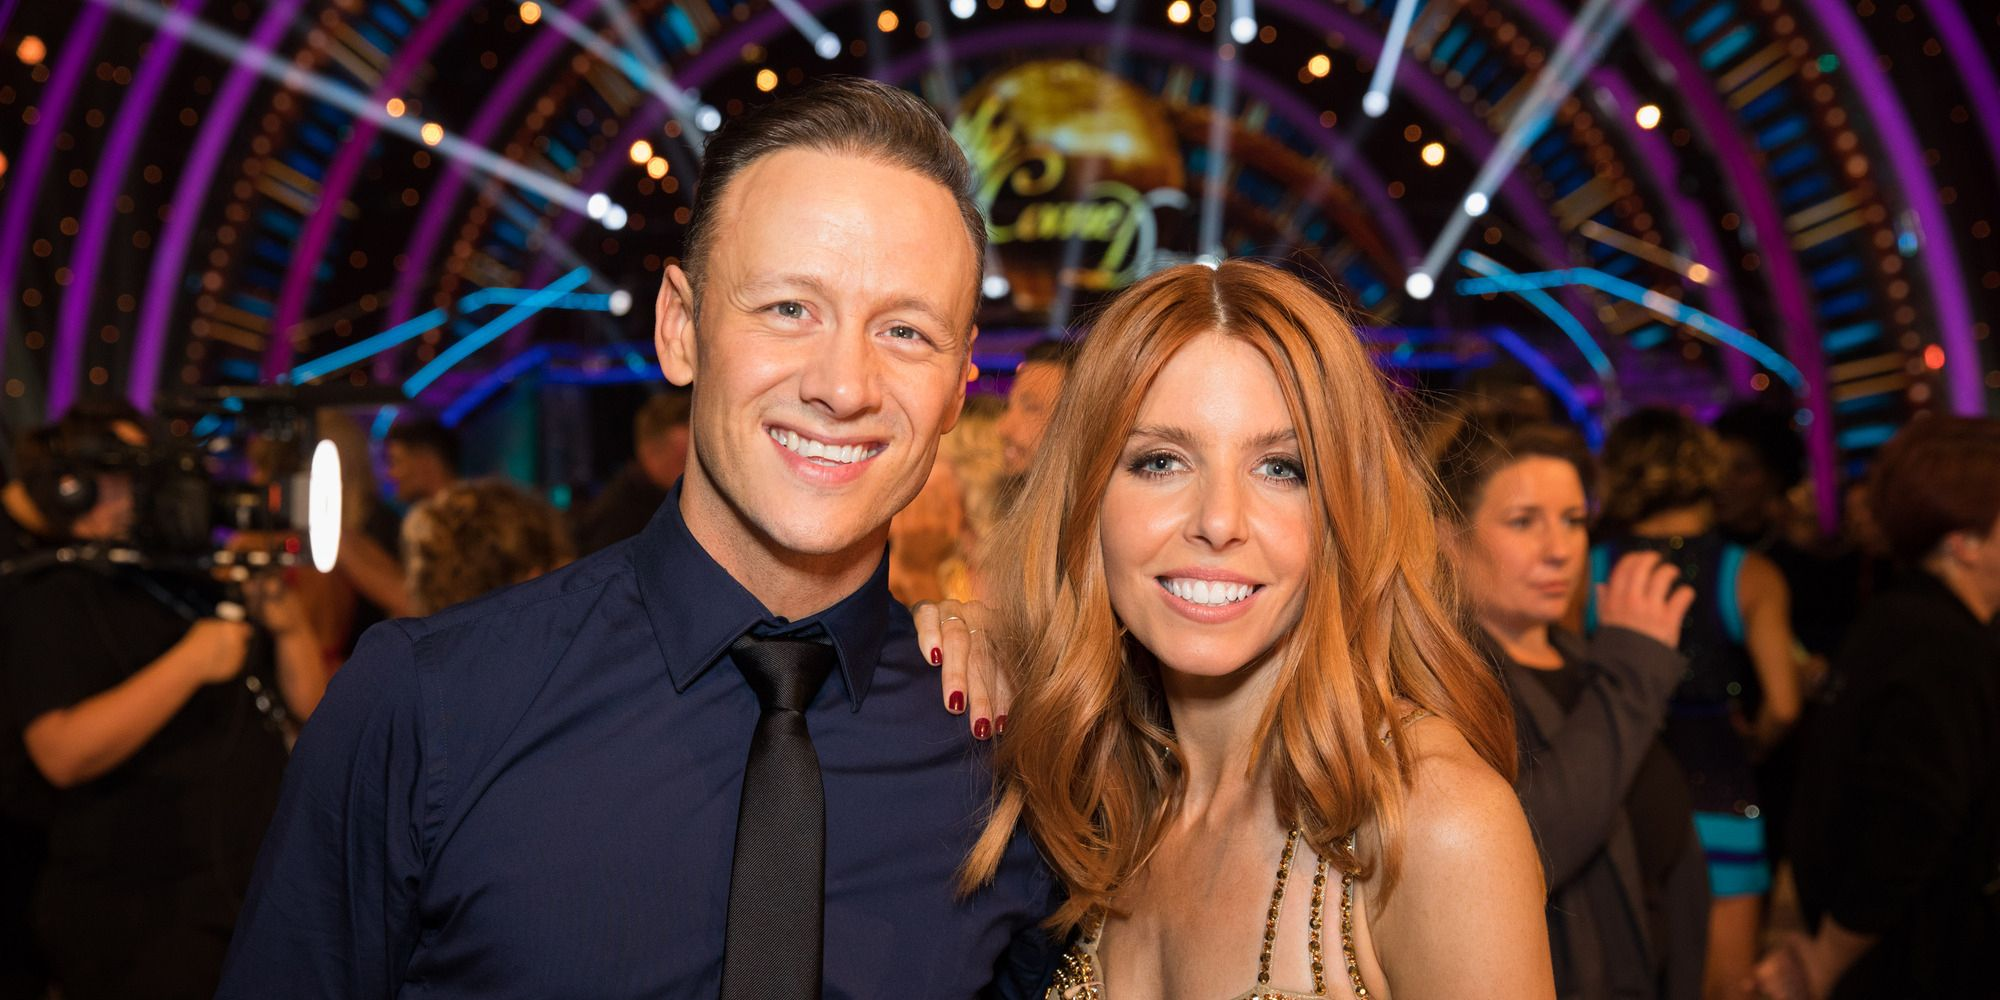 Strictly Come Dancing 2018 couples: Stacey Dooley and Kevin Clifton